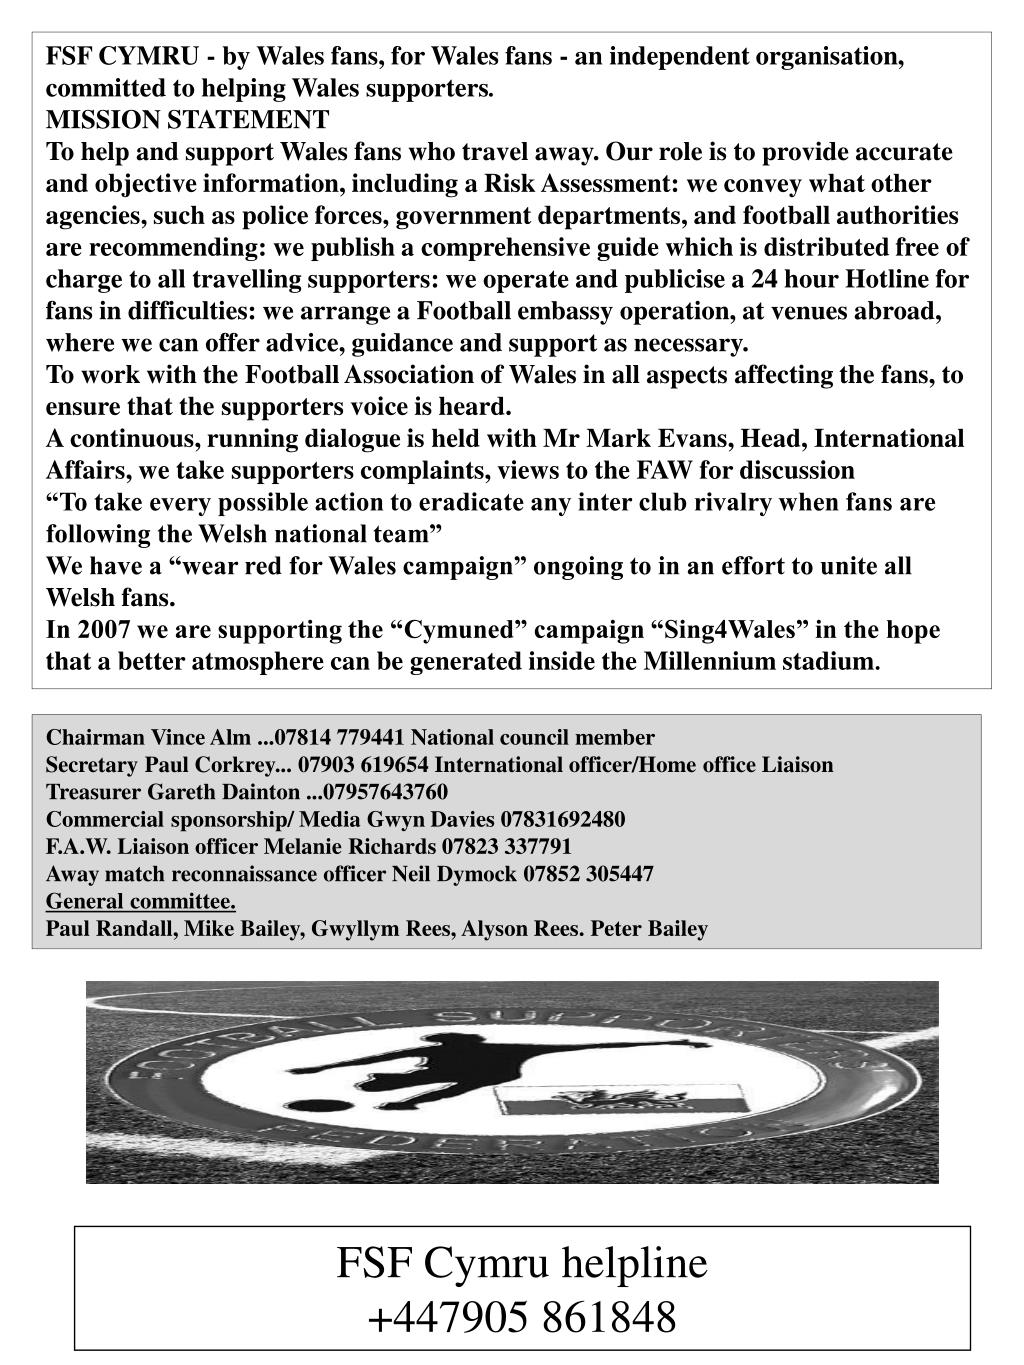 FSF CYMRU - by Wales fans, for Wales fans - an independent organisation, committed to helping Wales supporters